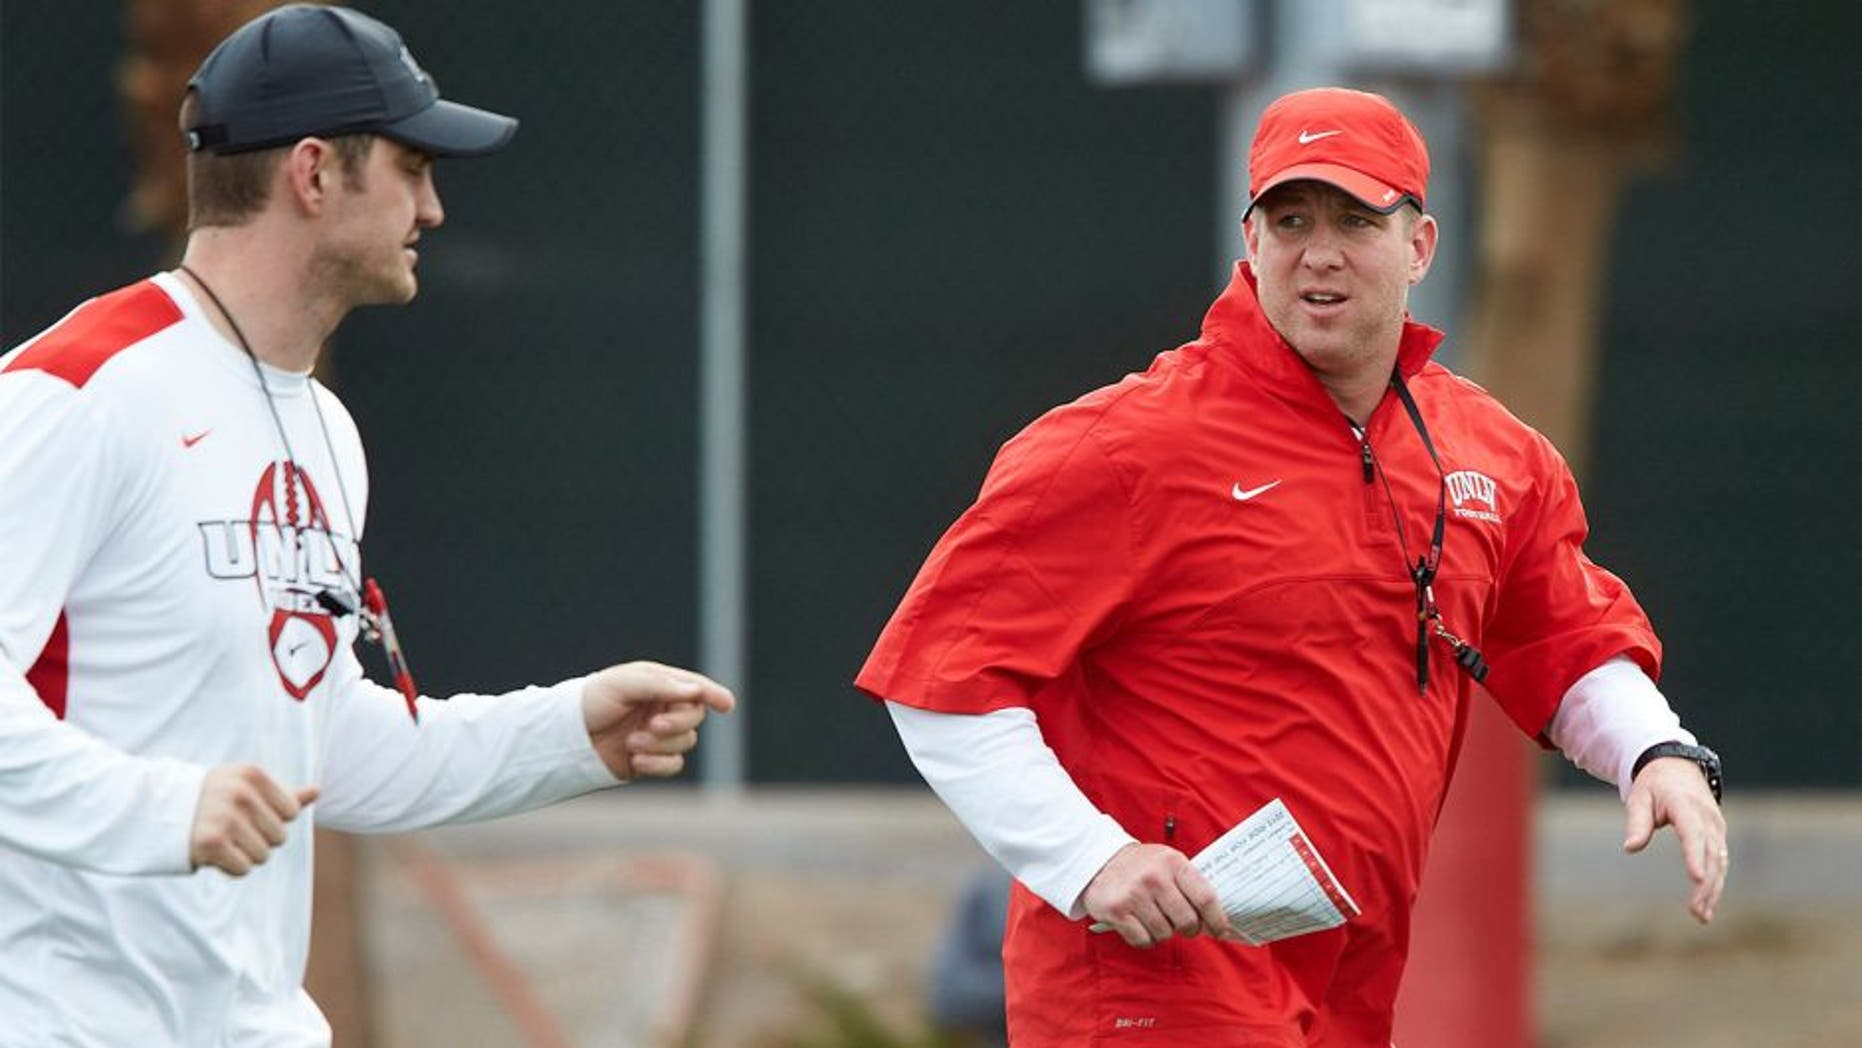 UNLV football assistant coaches during practice at Rebel Park on March 18, 2015. (R. Marsh Starks / UNLV Photo Services)